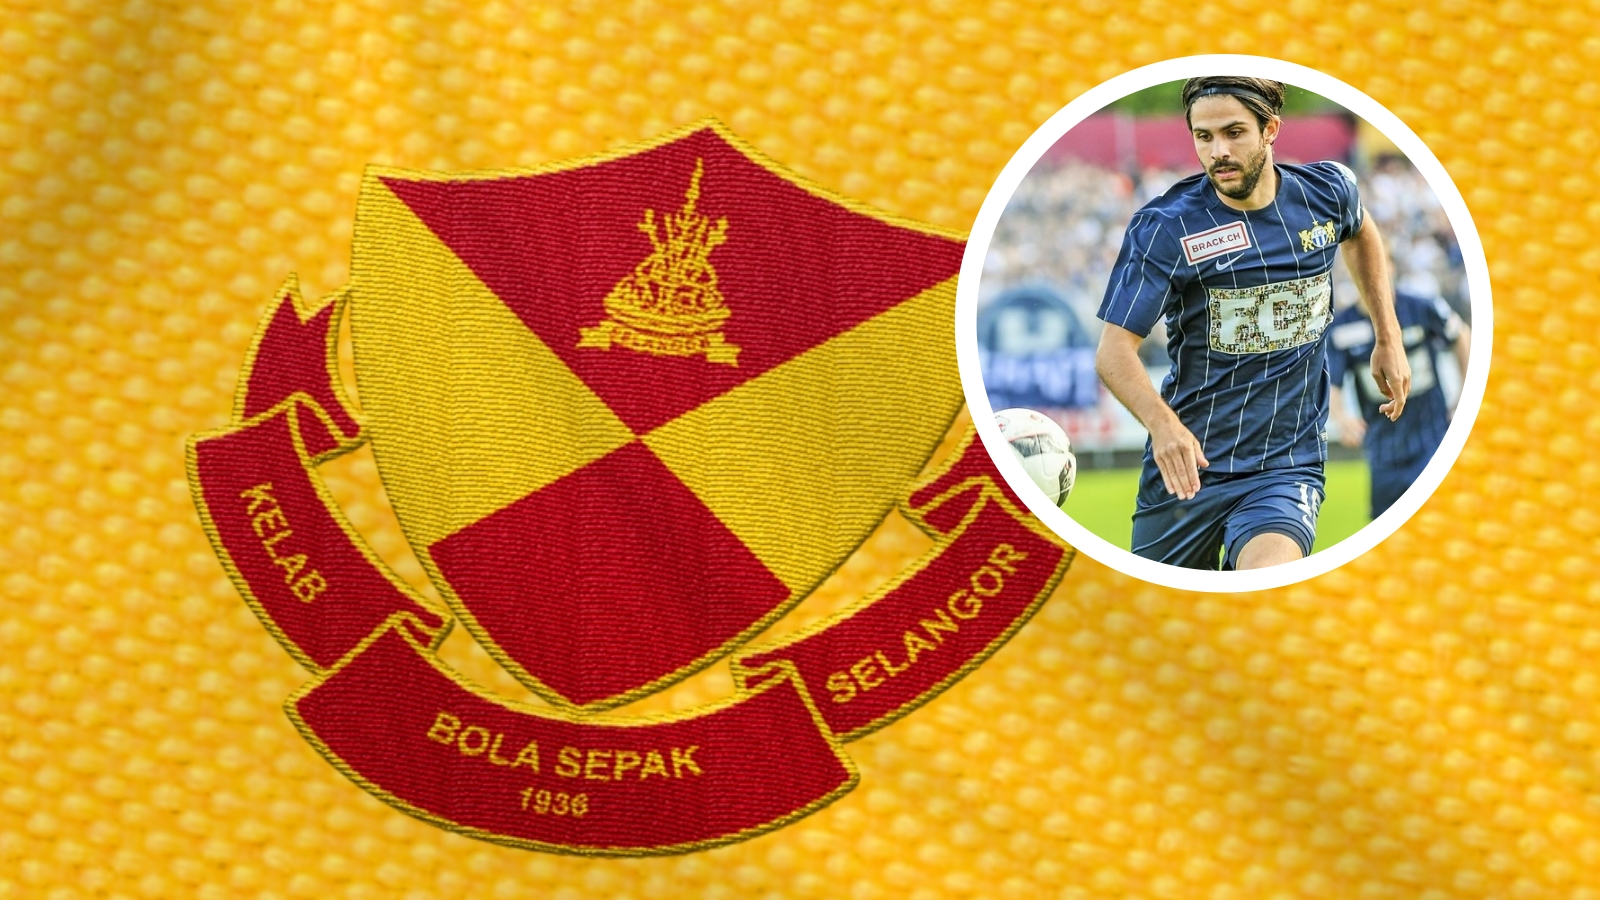 'I wanted to be part of Red Yellow family from the first minute' - Selangor complete signing of World Cup winner